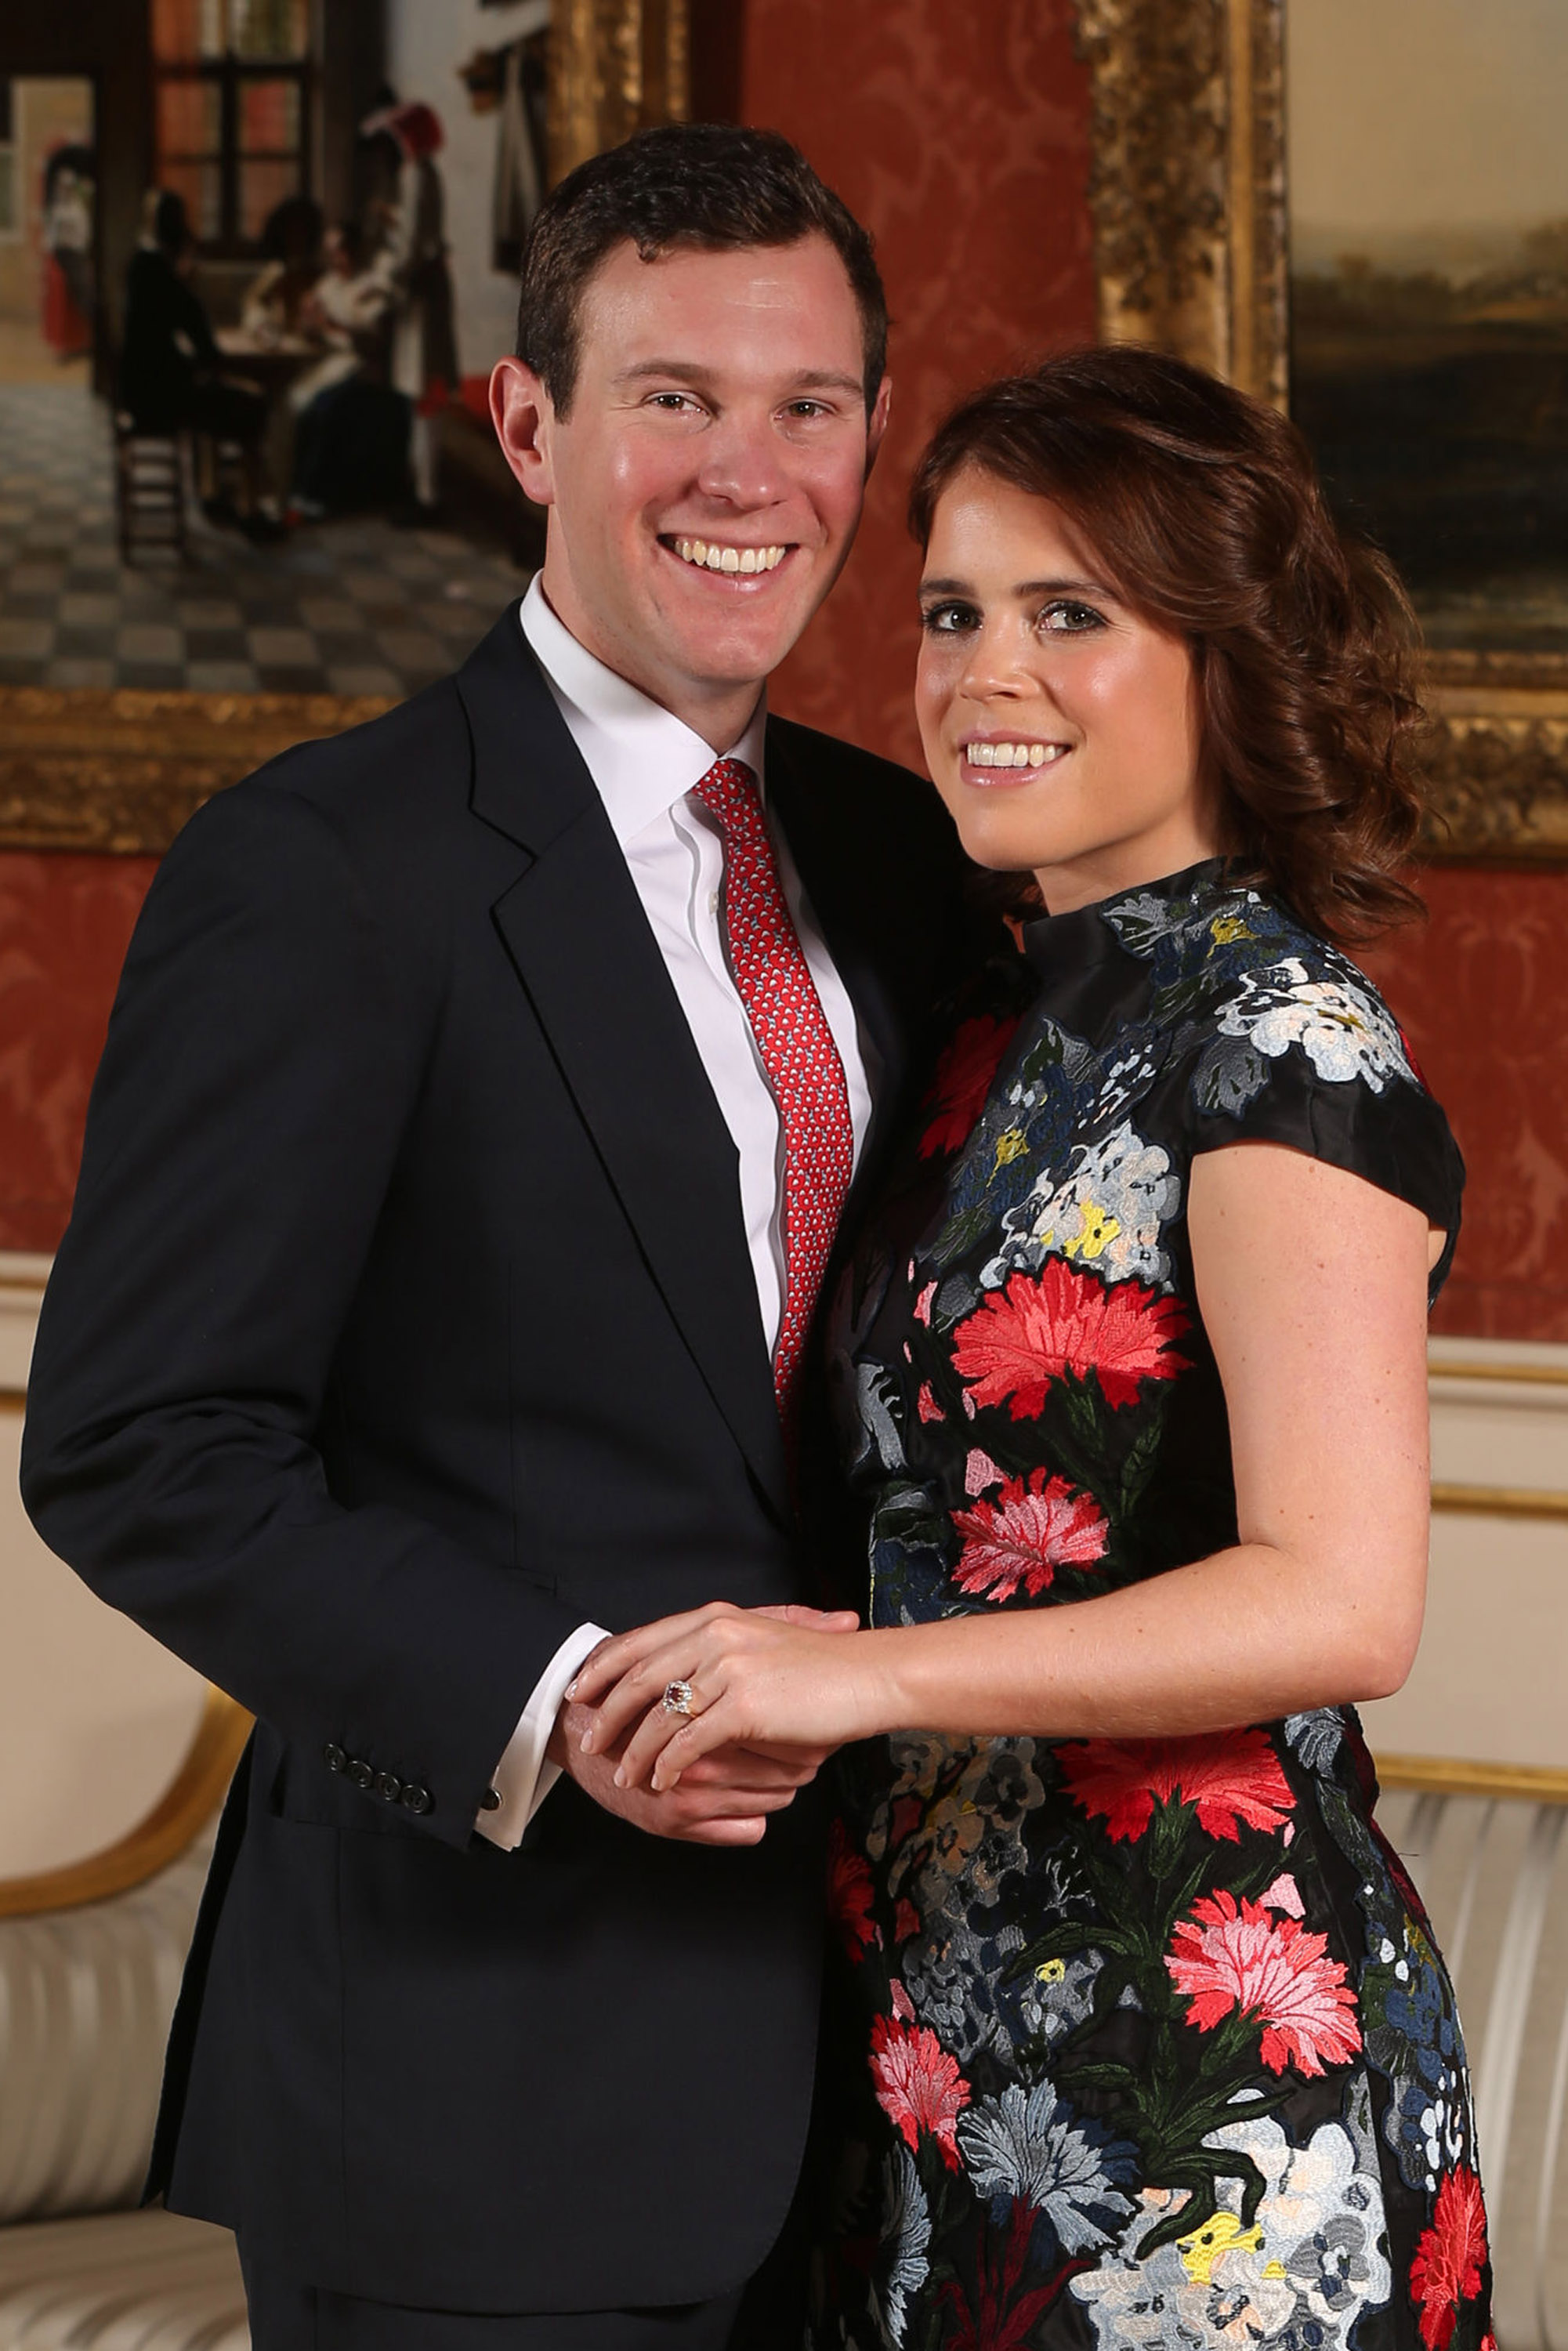 Princess Eugenie and Jack Brooksbank pose in the Picture Gallery at Buckingham Palace after they announced their engagement. They are to marry at St George's Chapel in Windsor Castle in the autumn this year. (Getty Images)